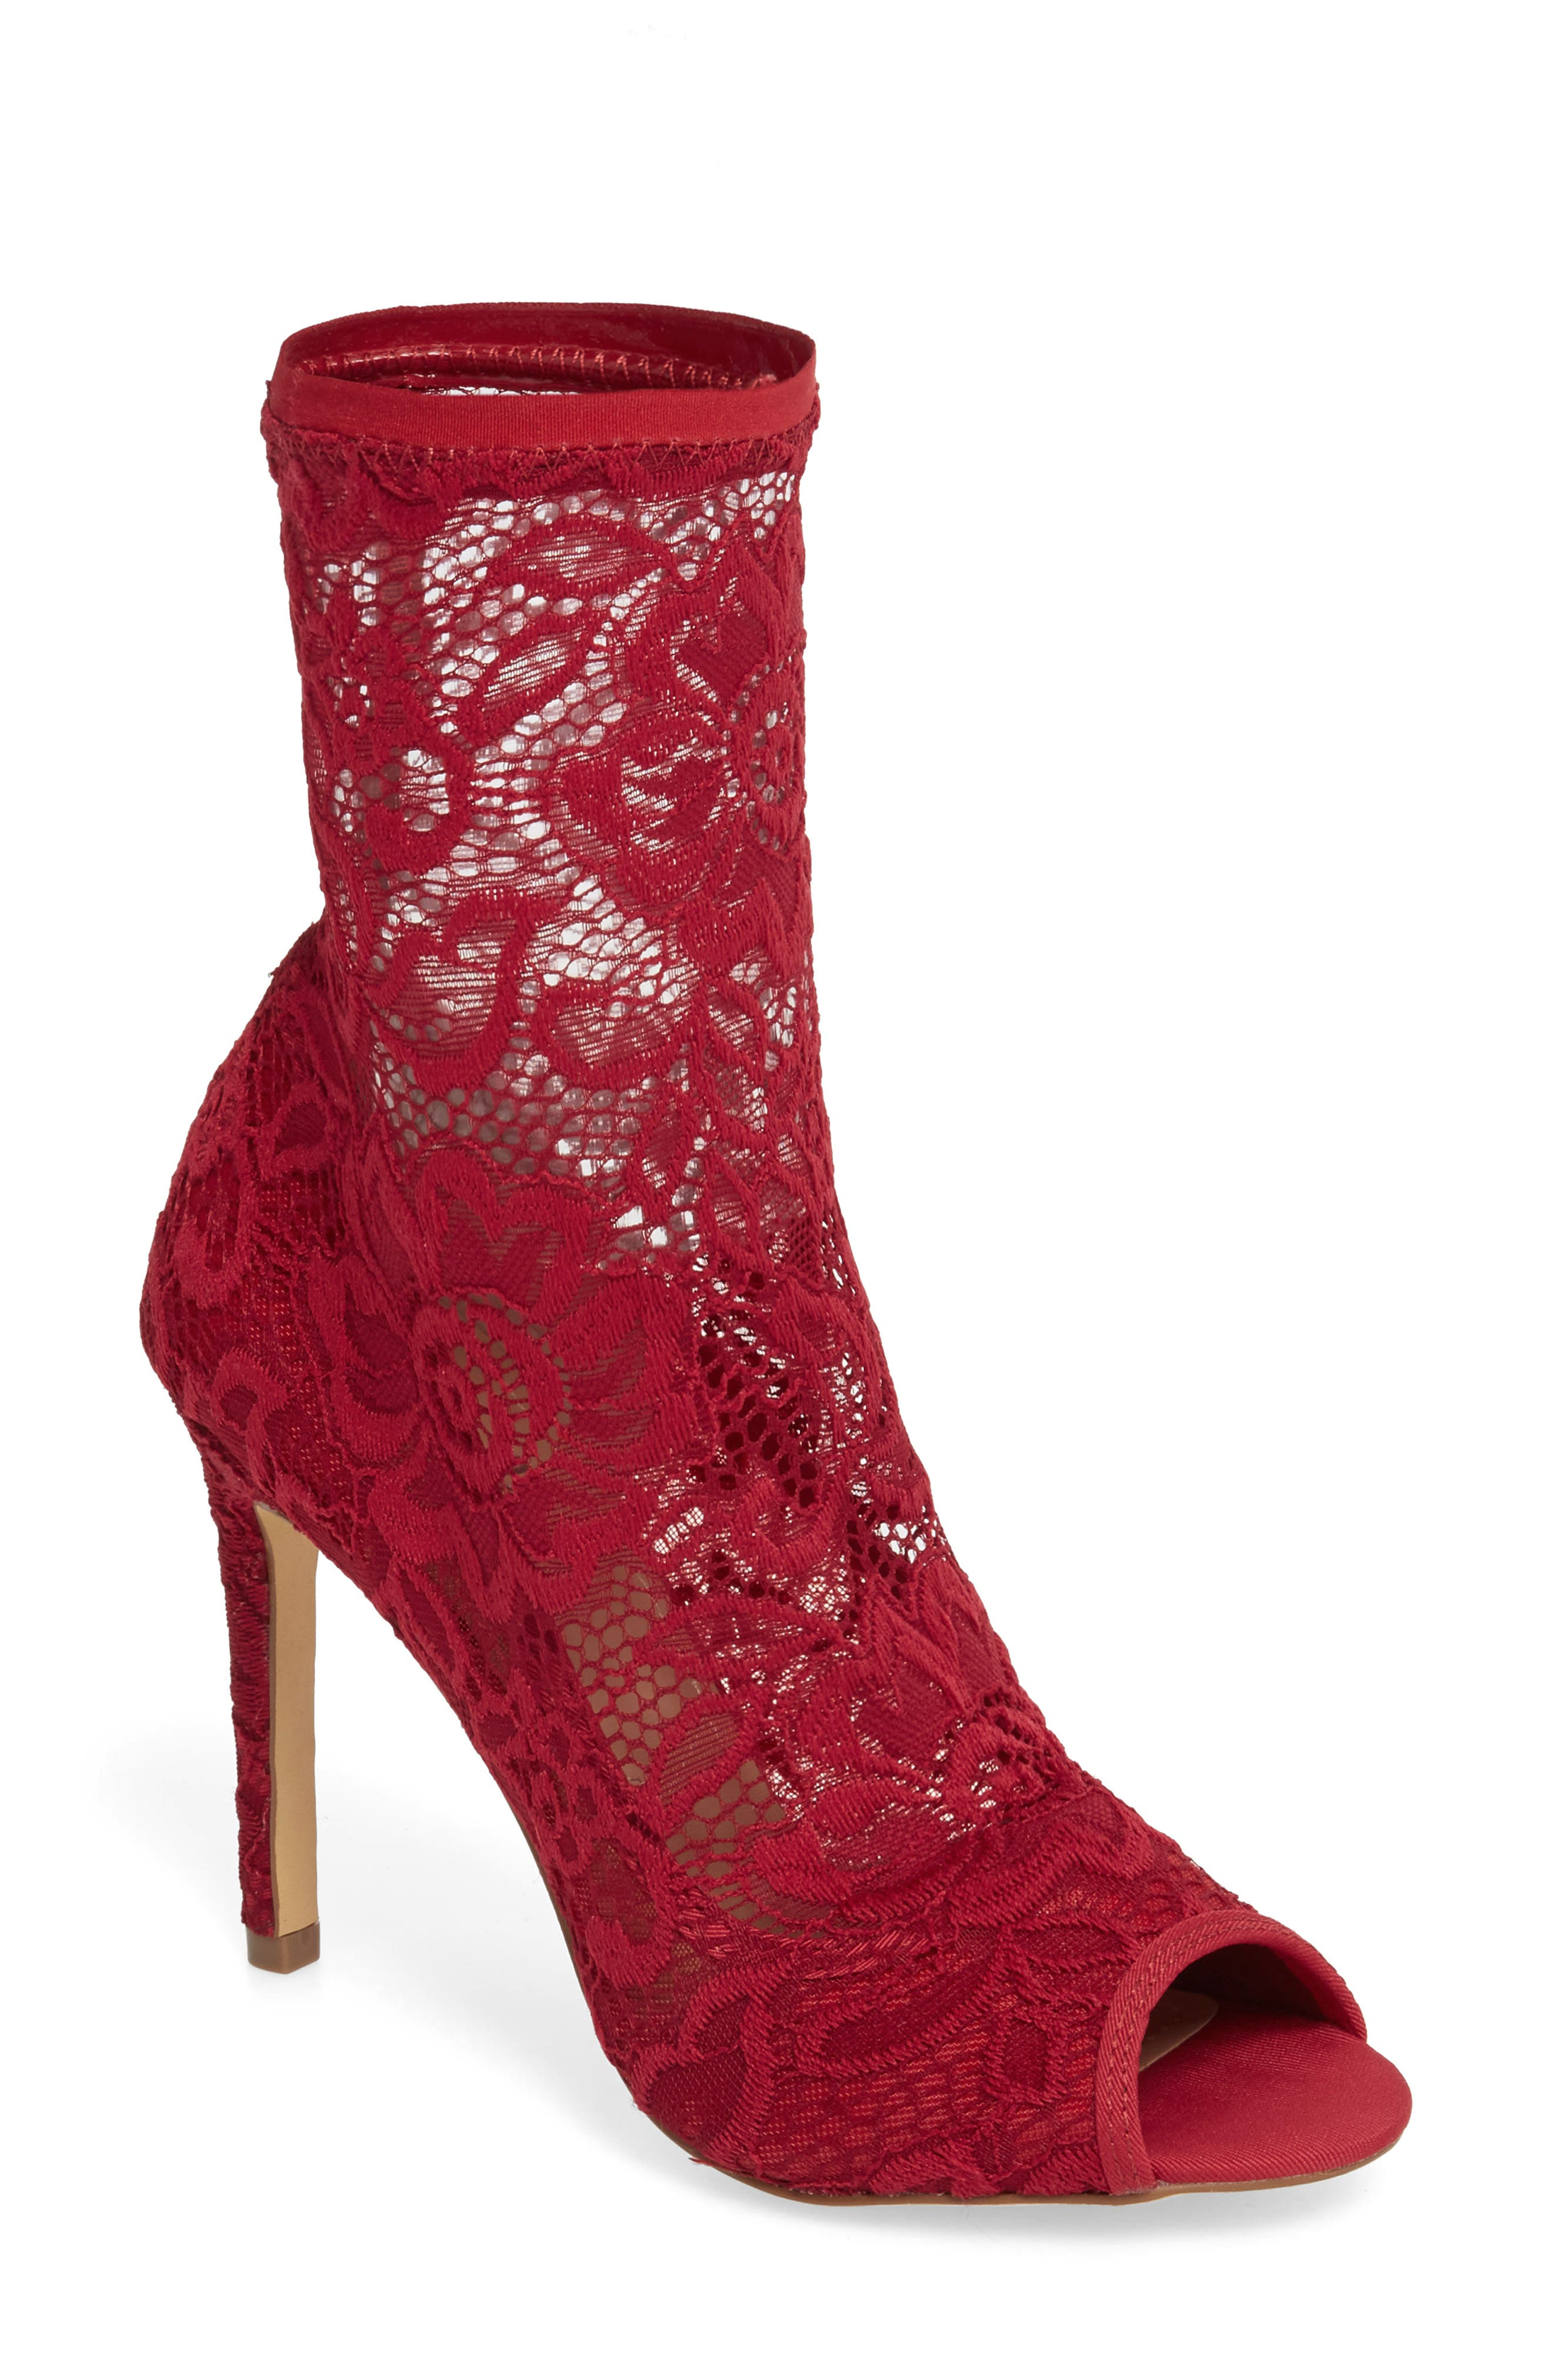 Imaginary Lace Sock Bootie,                         Main,                         color, Scarlet Fabric